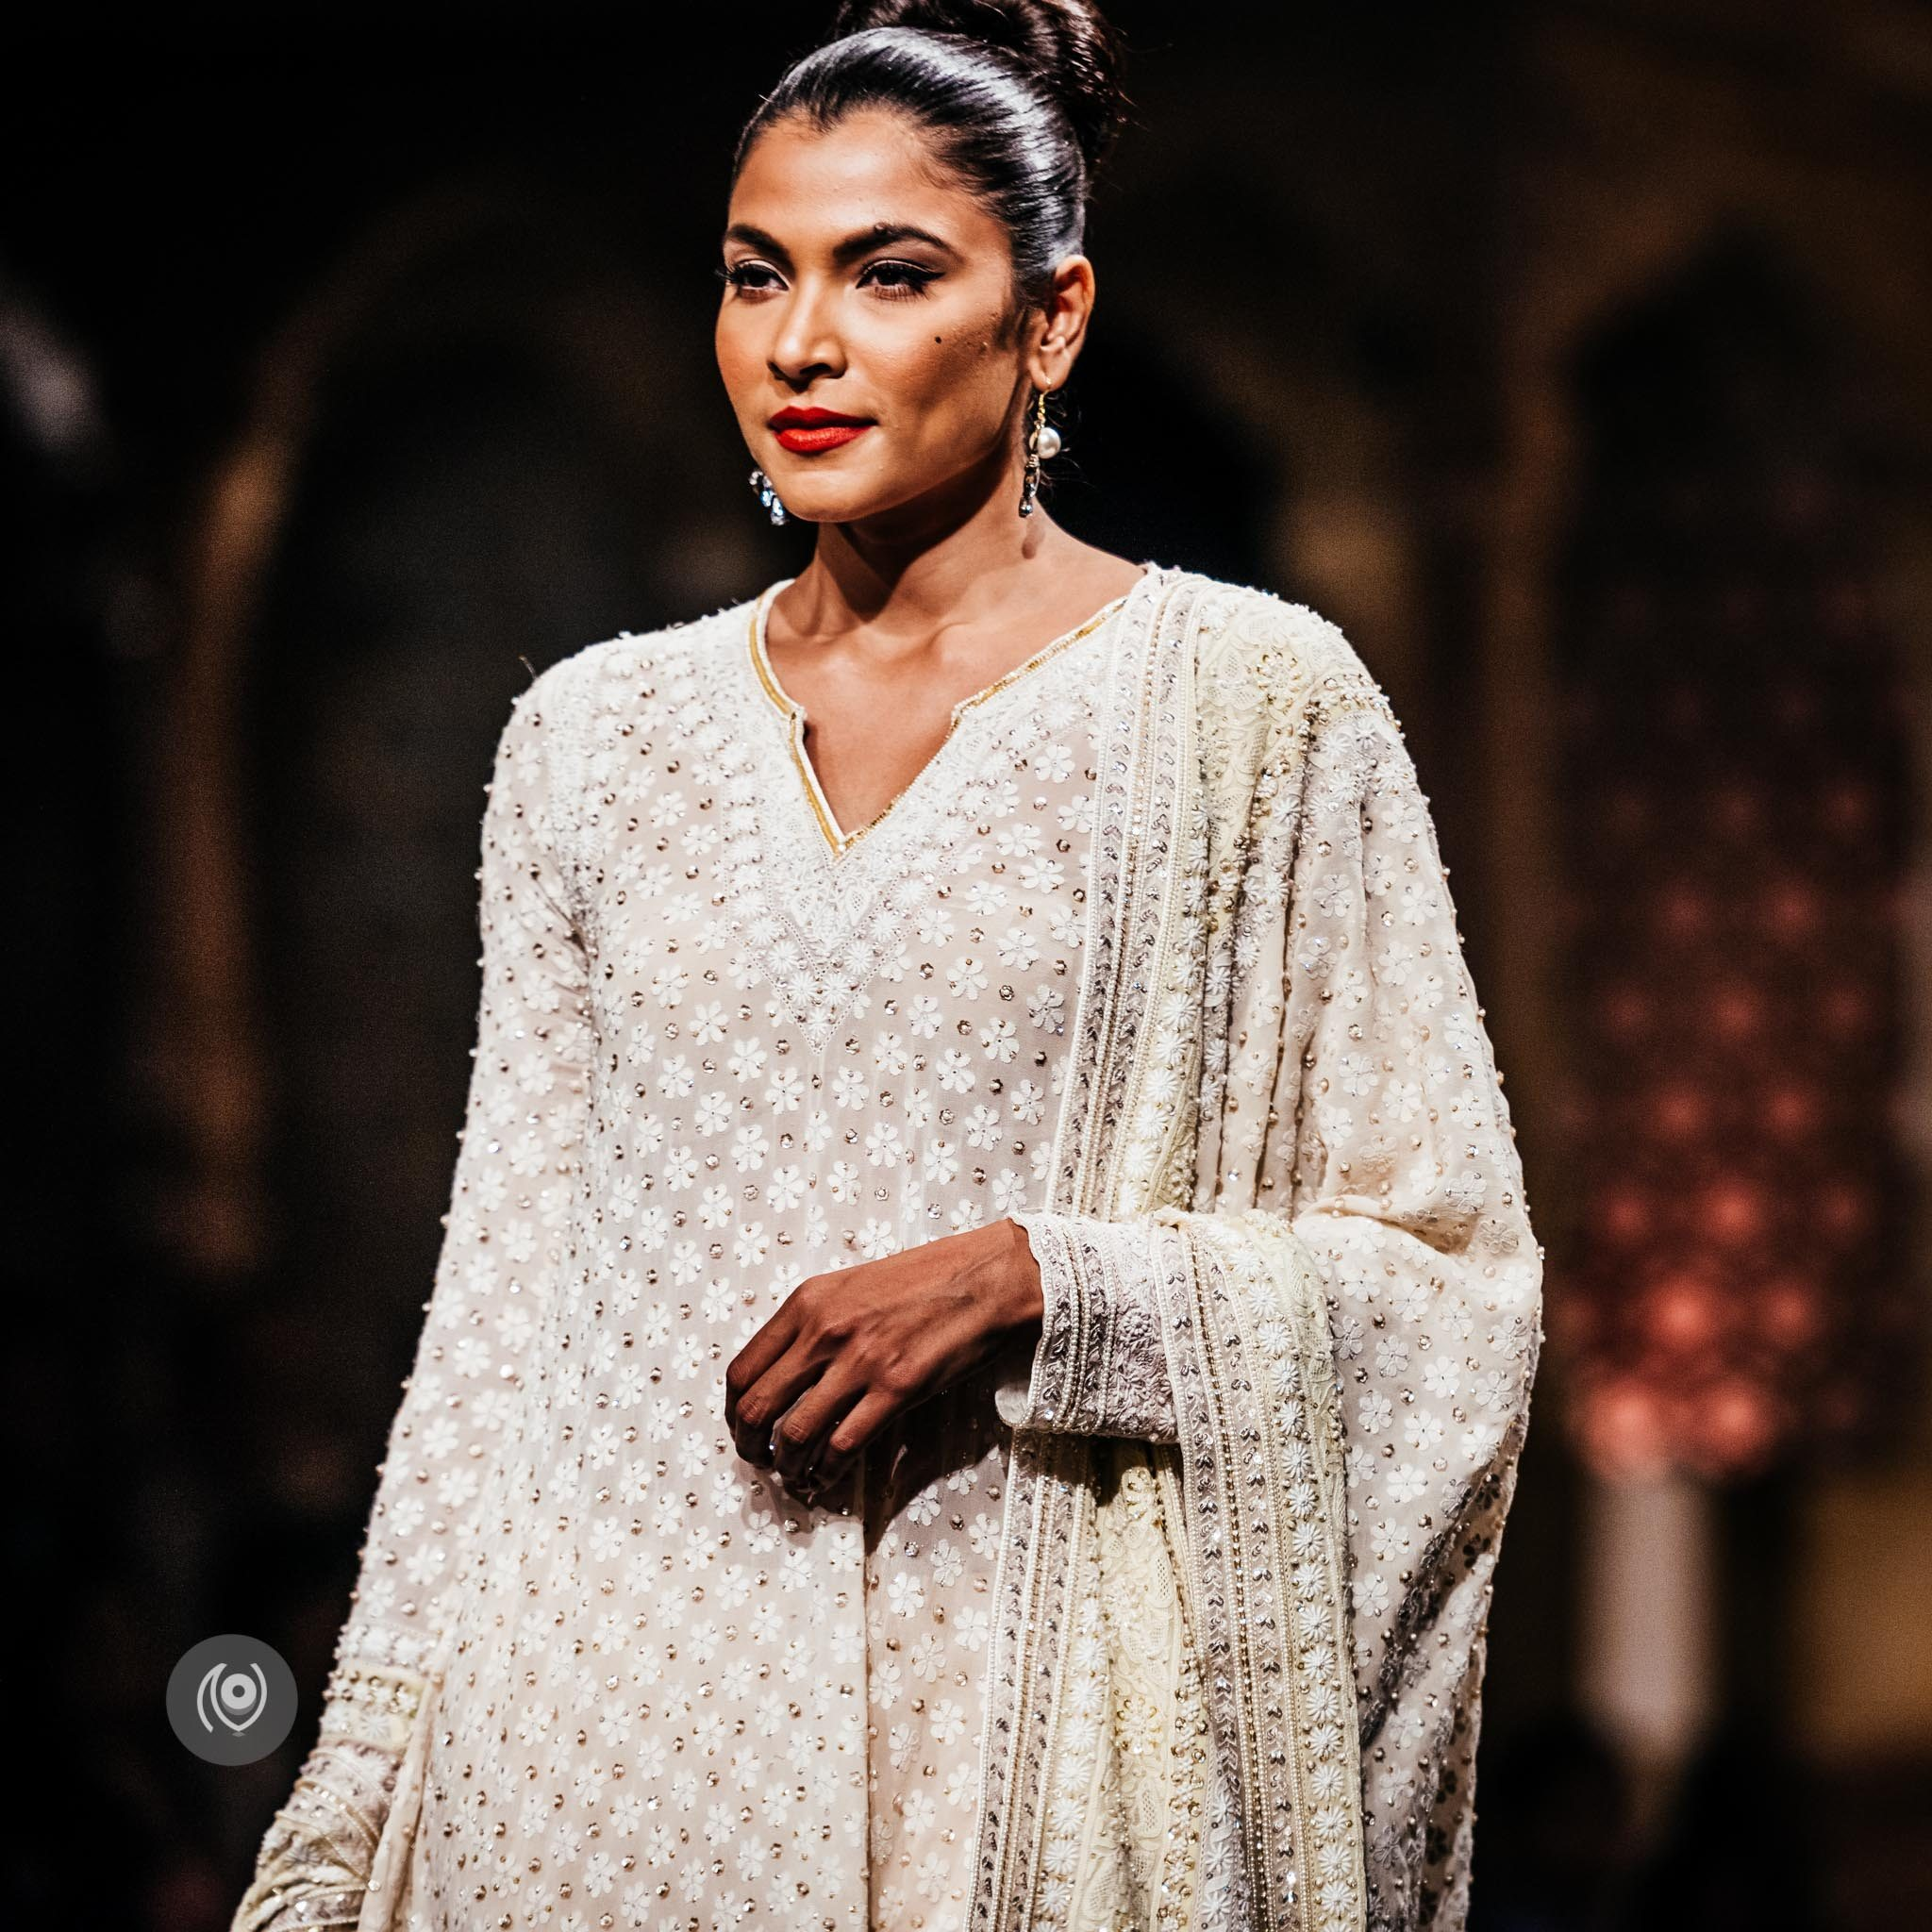 #SwarovskiCrystals Abu Jani Sandeep Khosla, BMW India Bridal Fashion Week, #BMWIBFW, Naina.co Luxury & Lifestyle, Photographer Storyteller, Blogger.